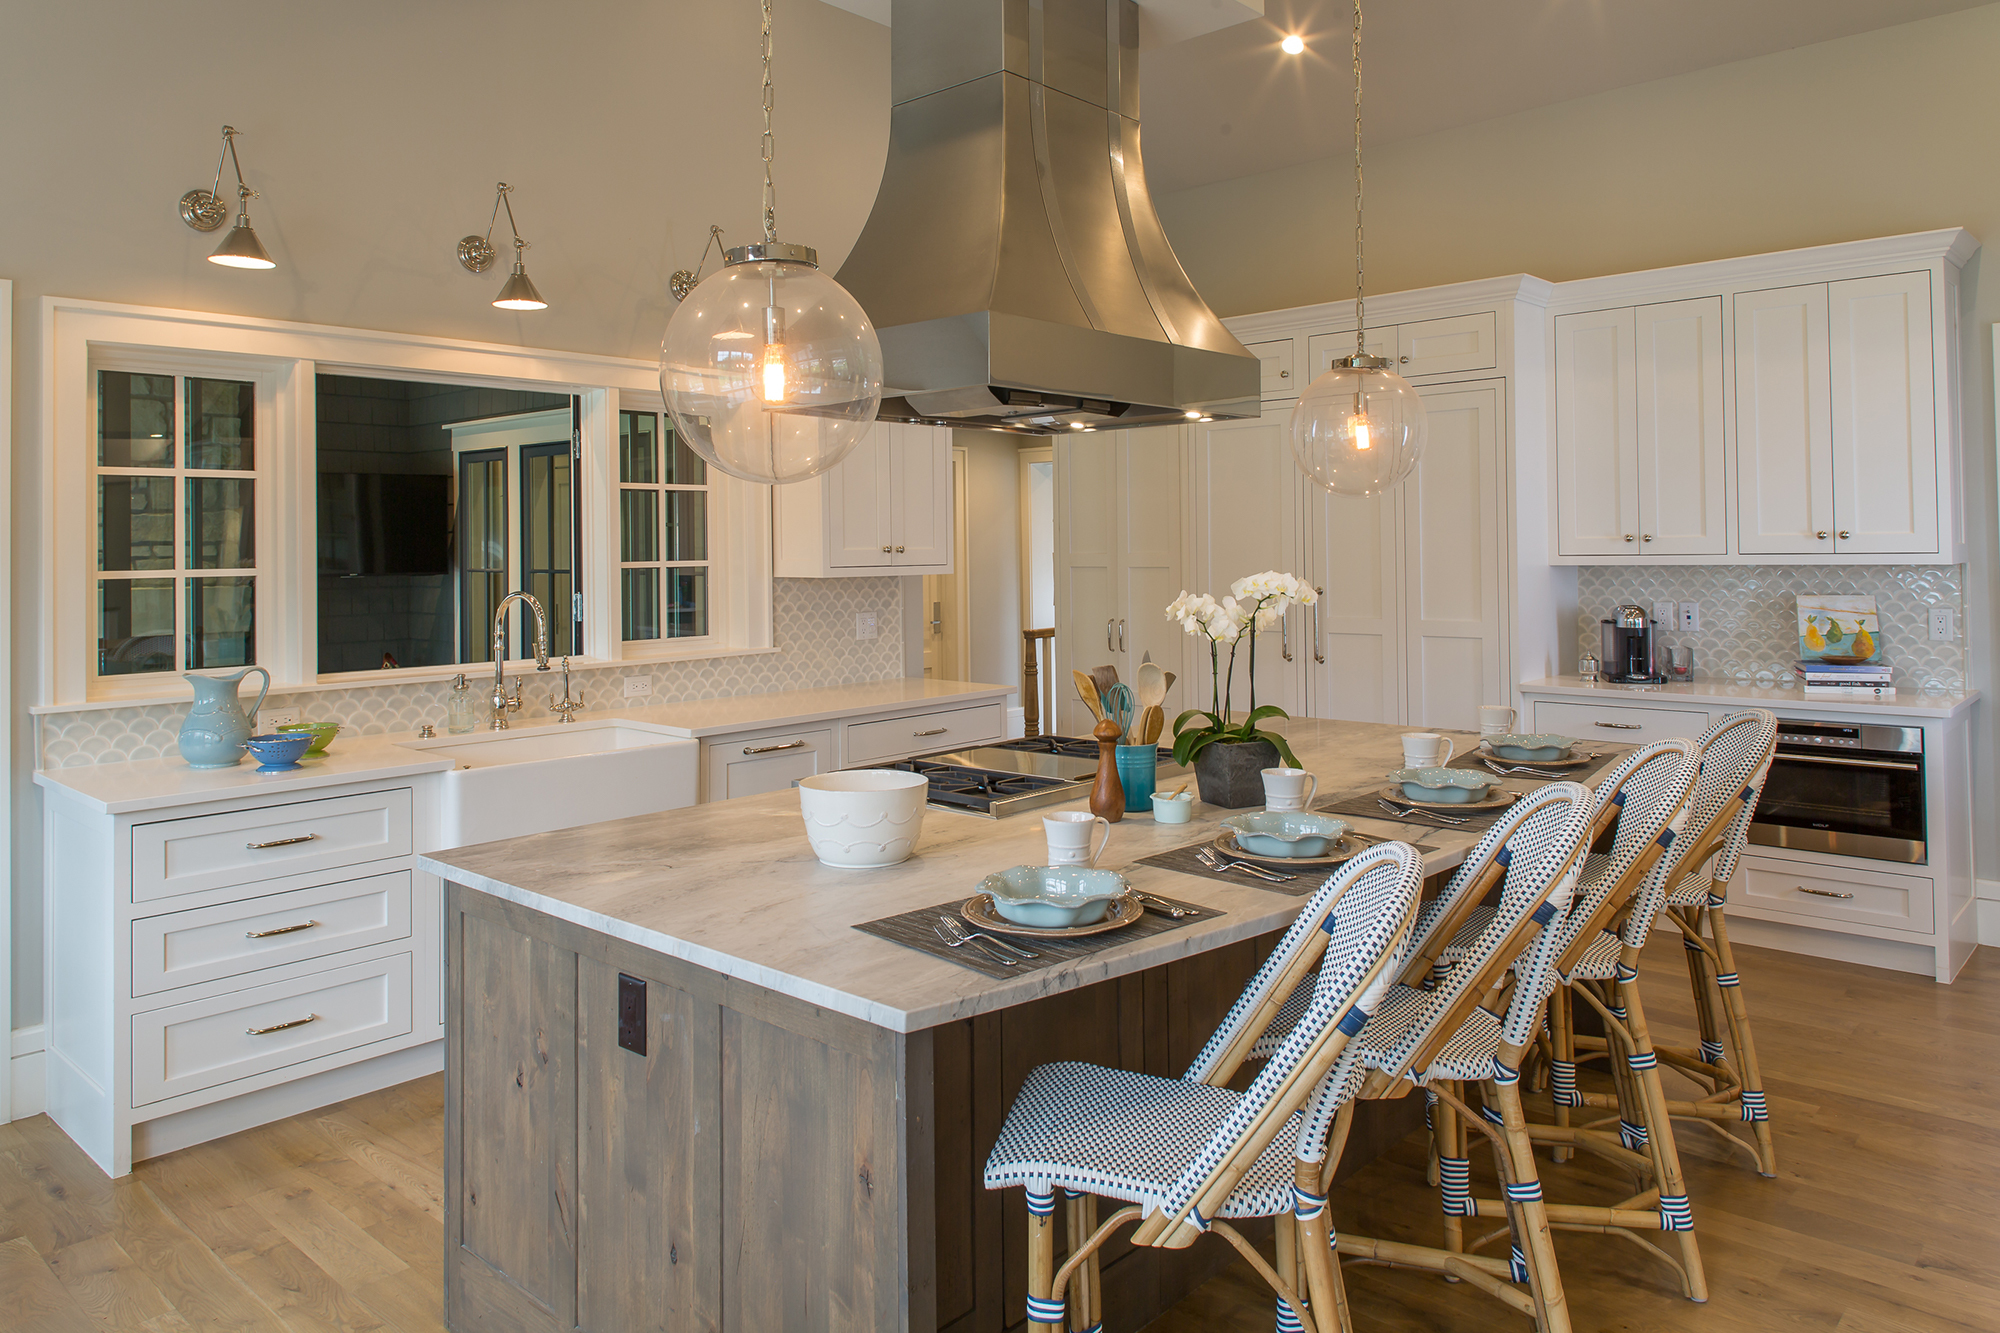 Painted Kitchen cabinets in White and Stained Kitchen Island in Driftwood by Showplace Cabinetry - View 1